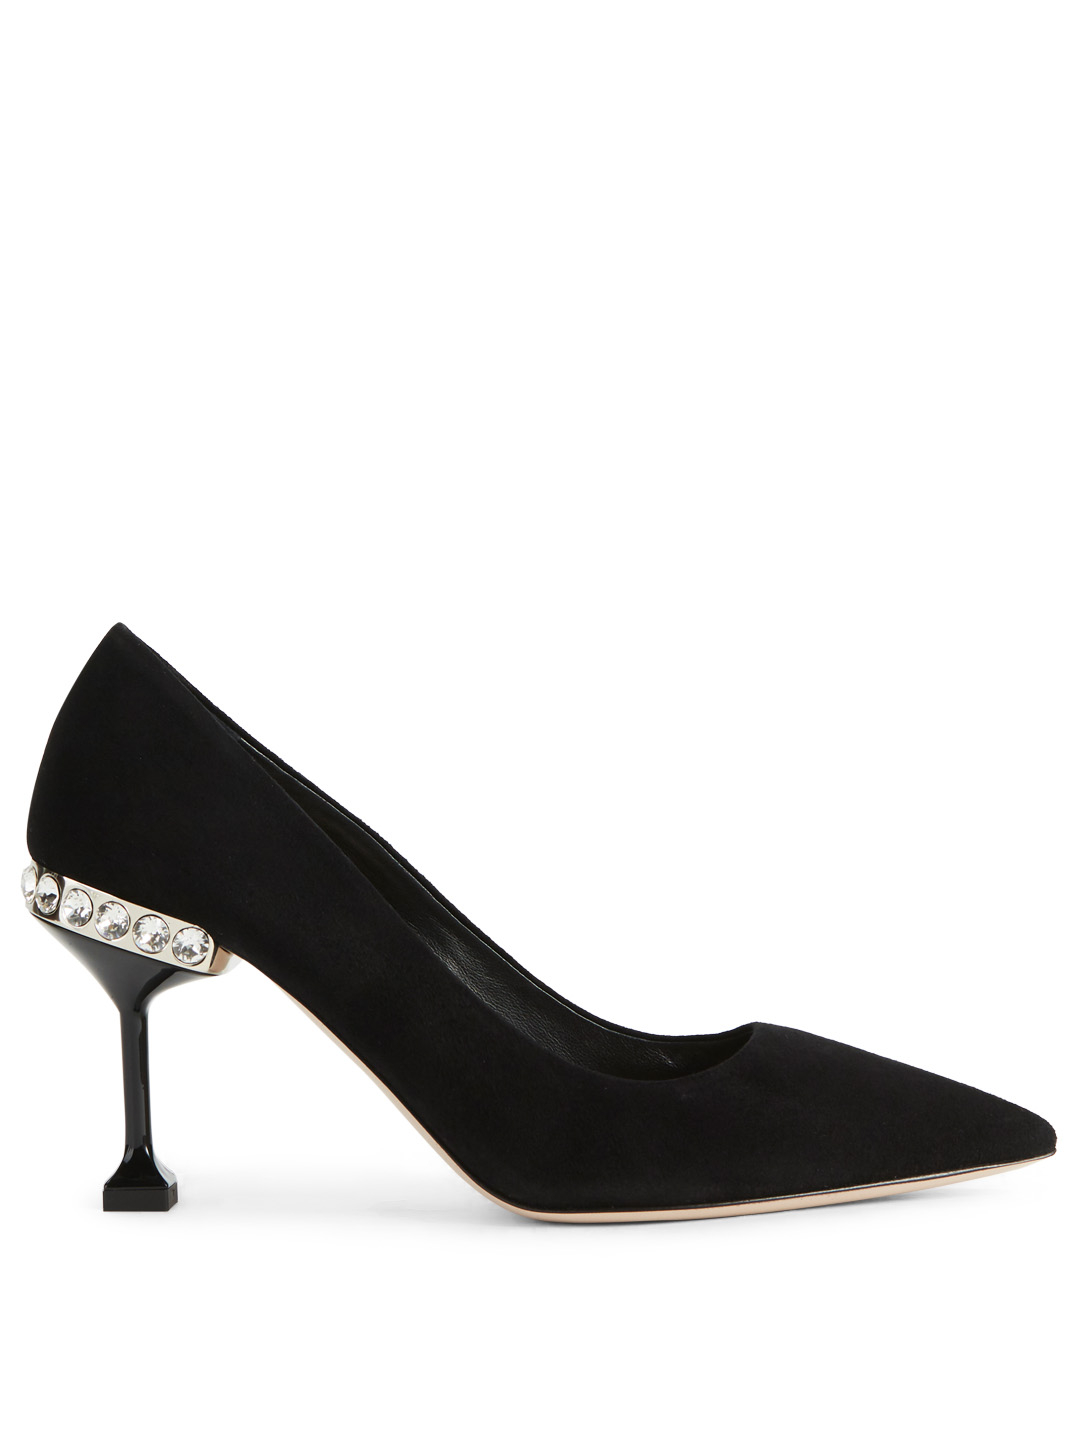 MIU MIU Suede Pumps With Jewelled Heel Womens Black